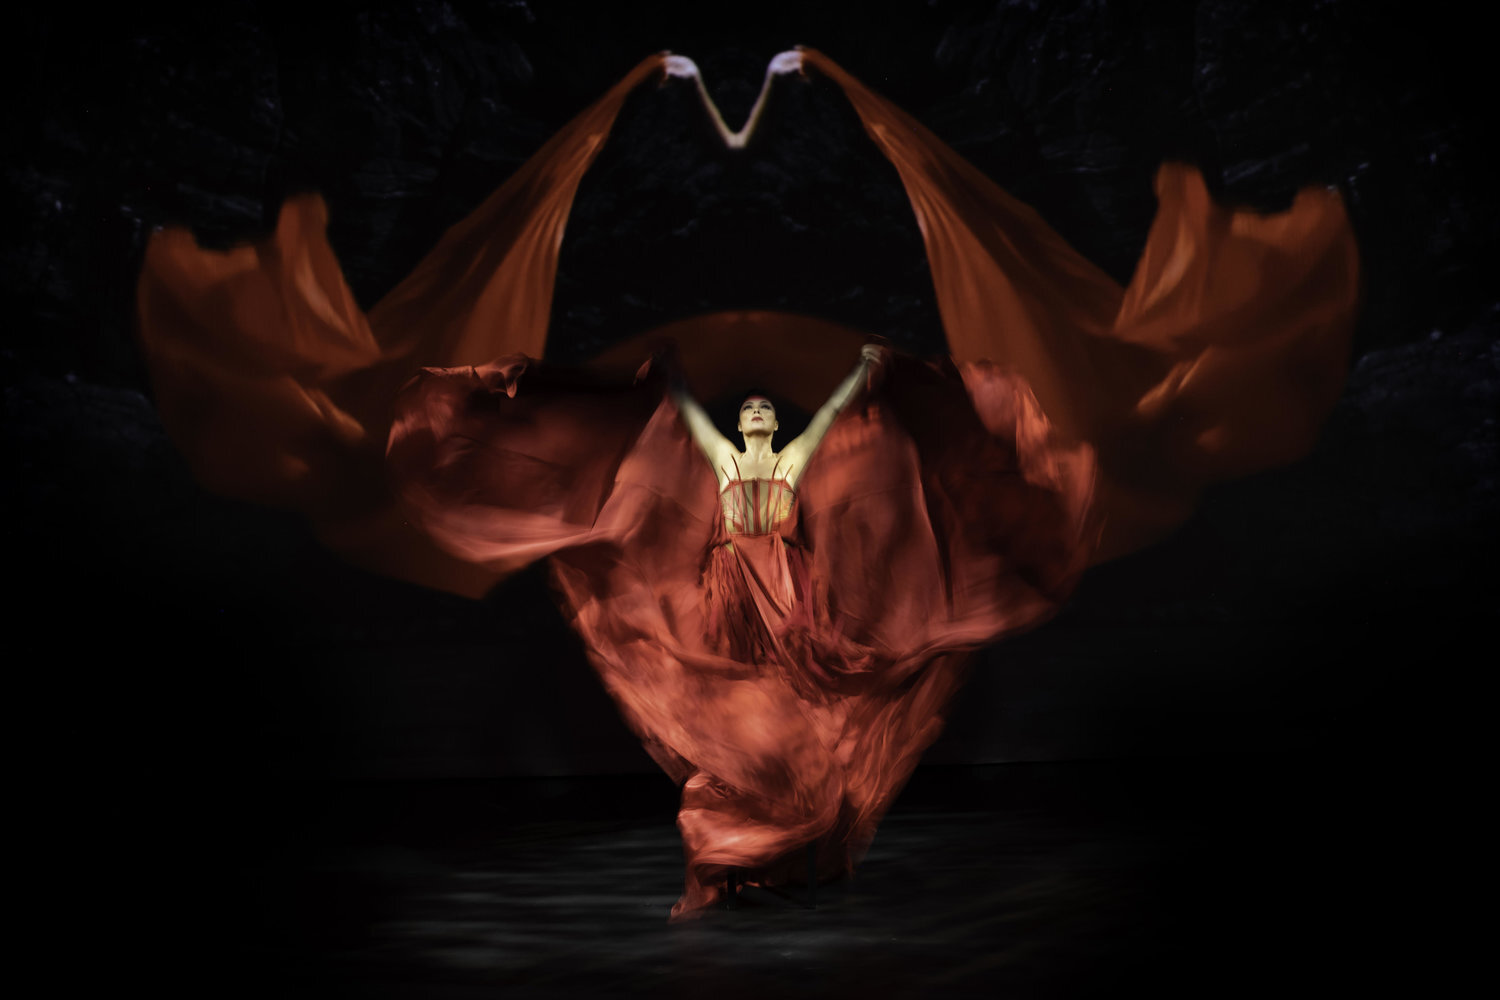 a native american performer extends her hands on a black stage covered in flowing red fabric from floor to ceiling